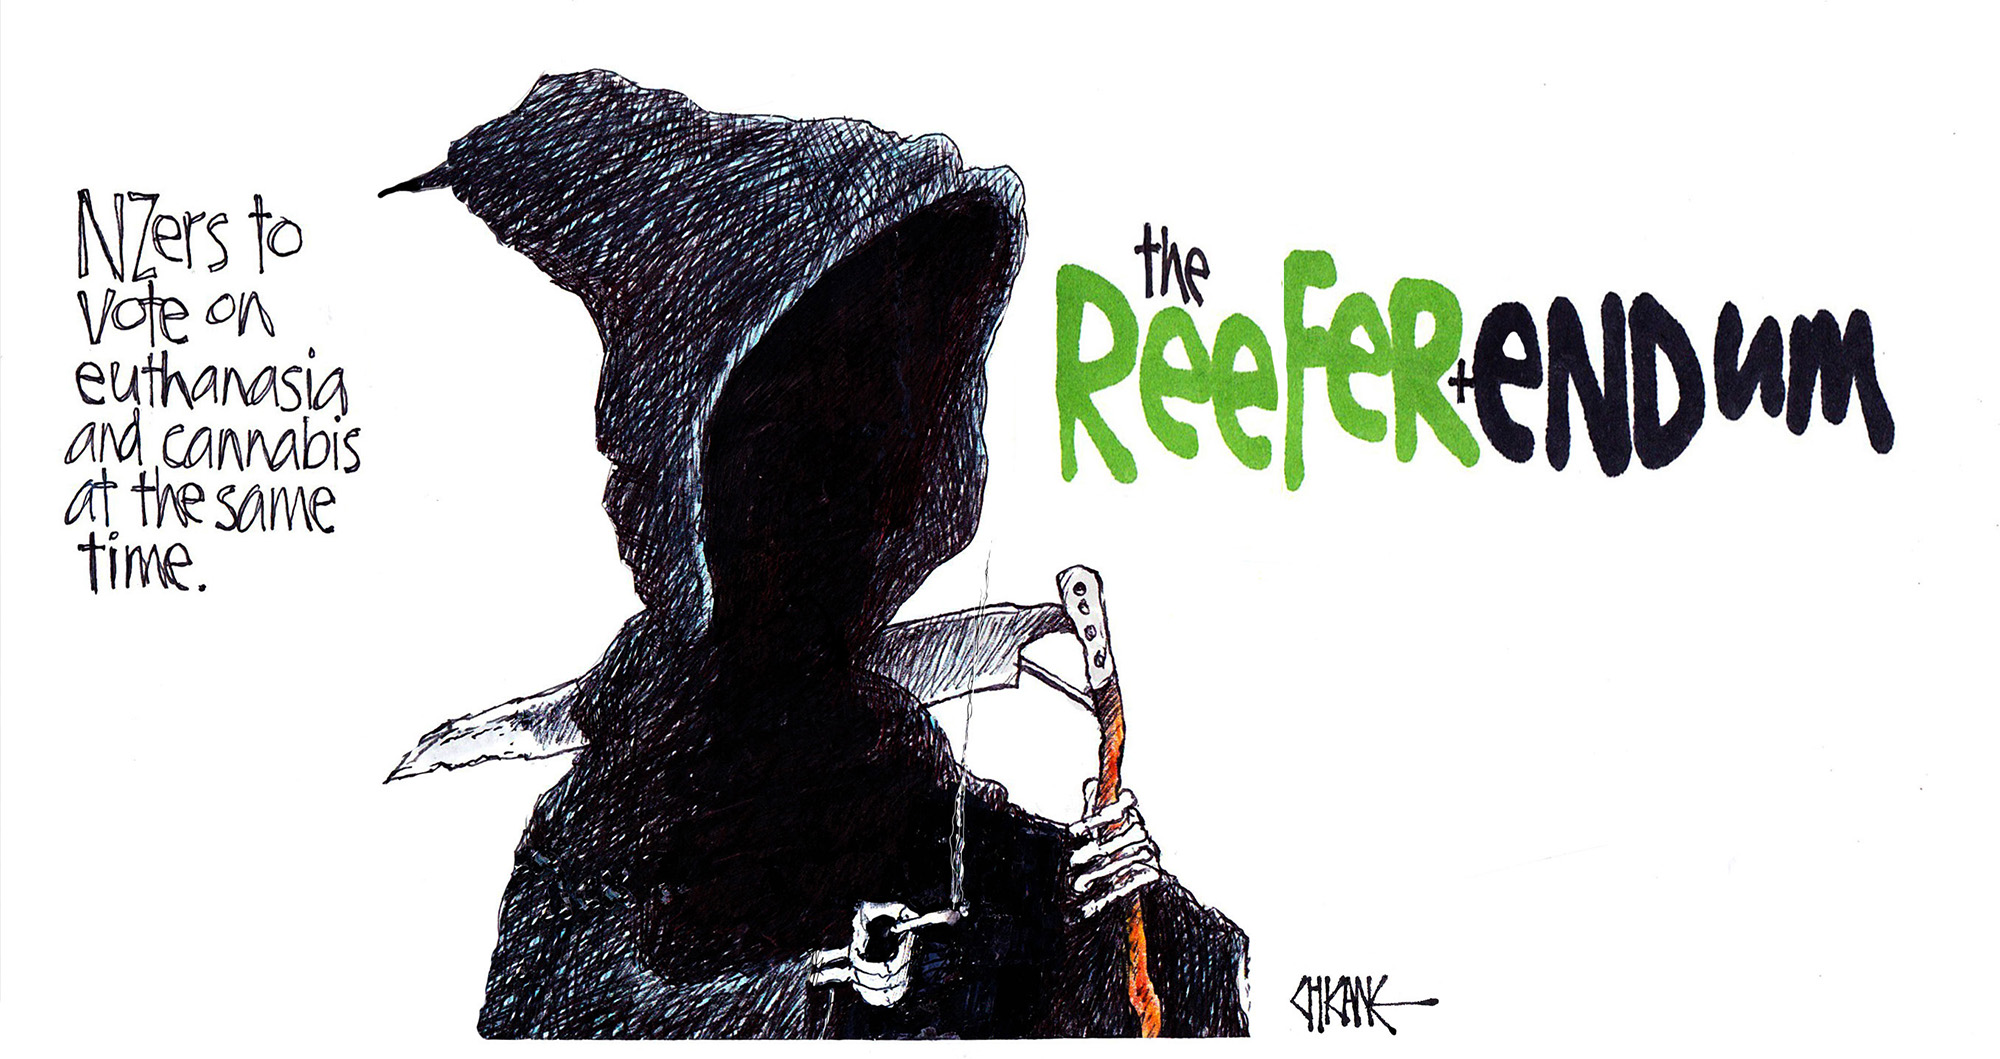 New Zealanders to vote on euthanasia and cannabis at the same time. The Reefer+endum. The Grim Reaper smokes a join. Cartoon by Chicane.